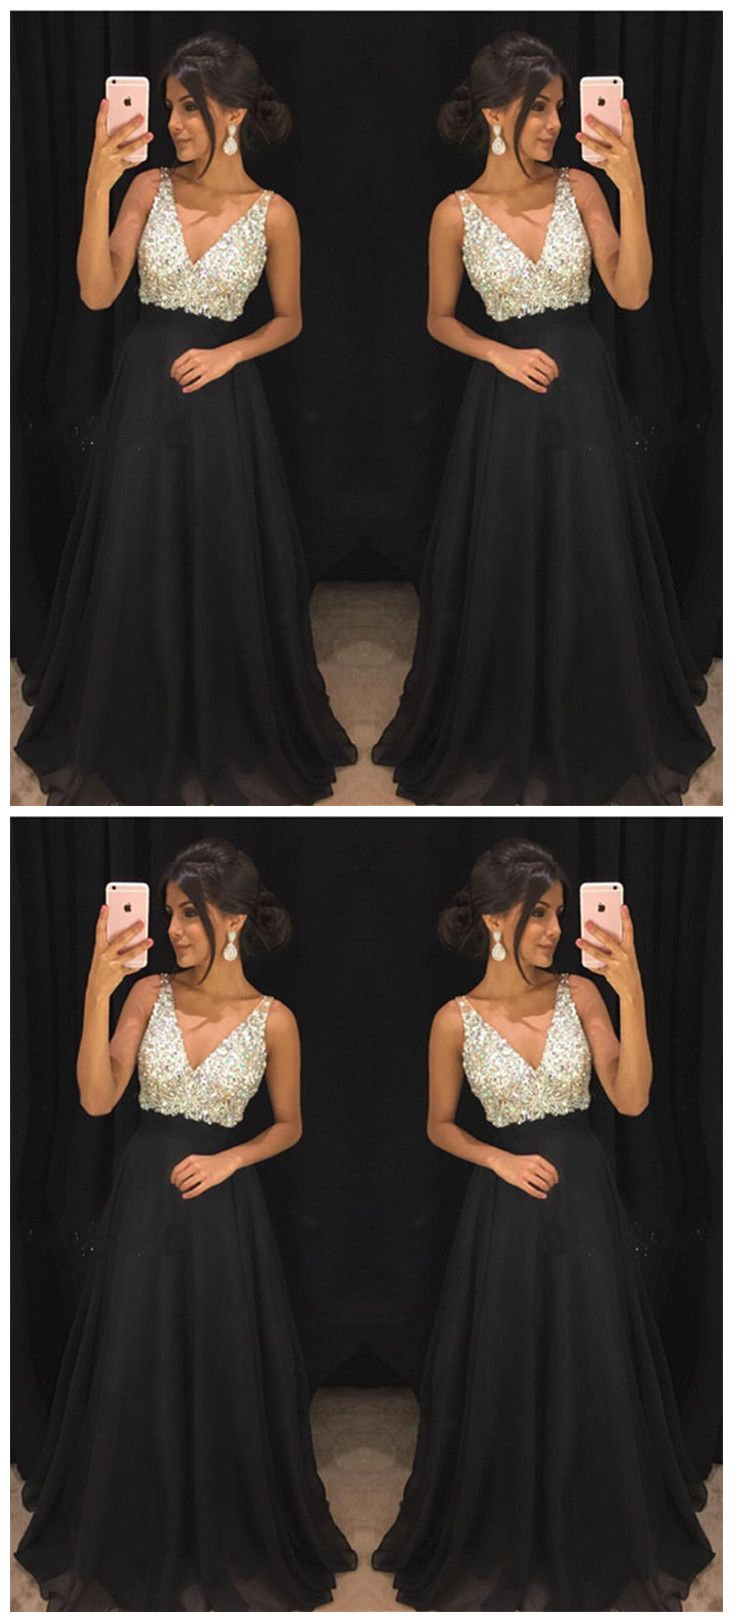 Pin by sydney montgomery on prom dresses pinterest prom and crystals